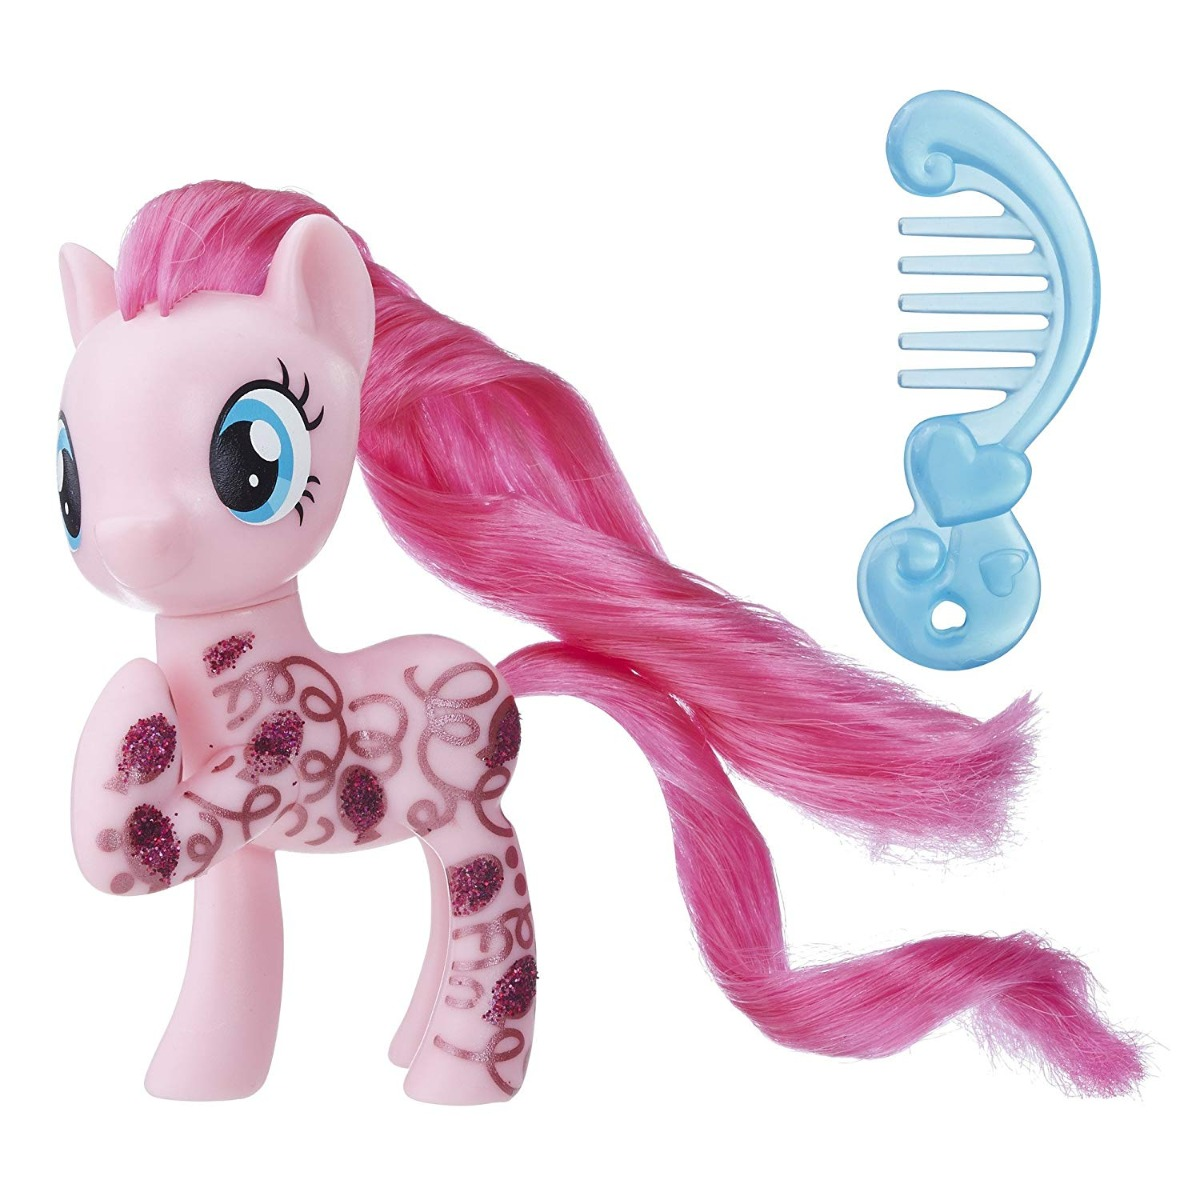 Figurina My Little Pony, Pinkie Pie, E2557